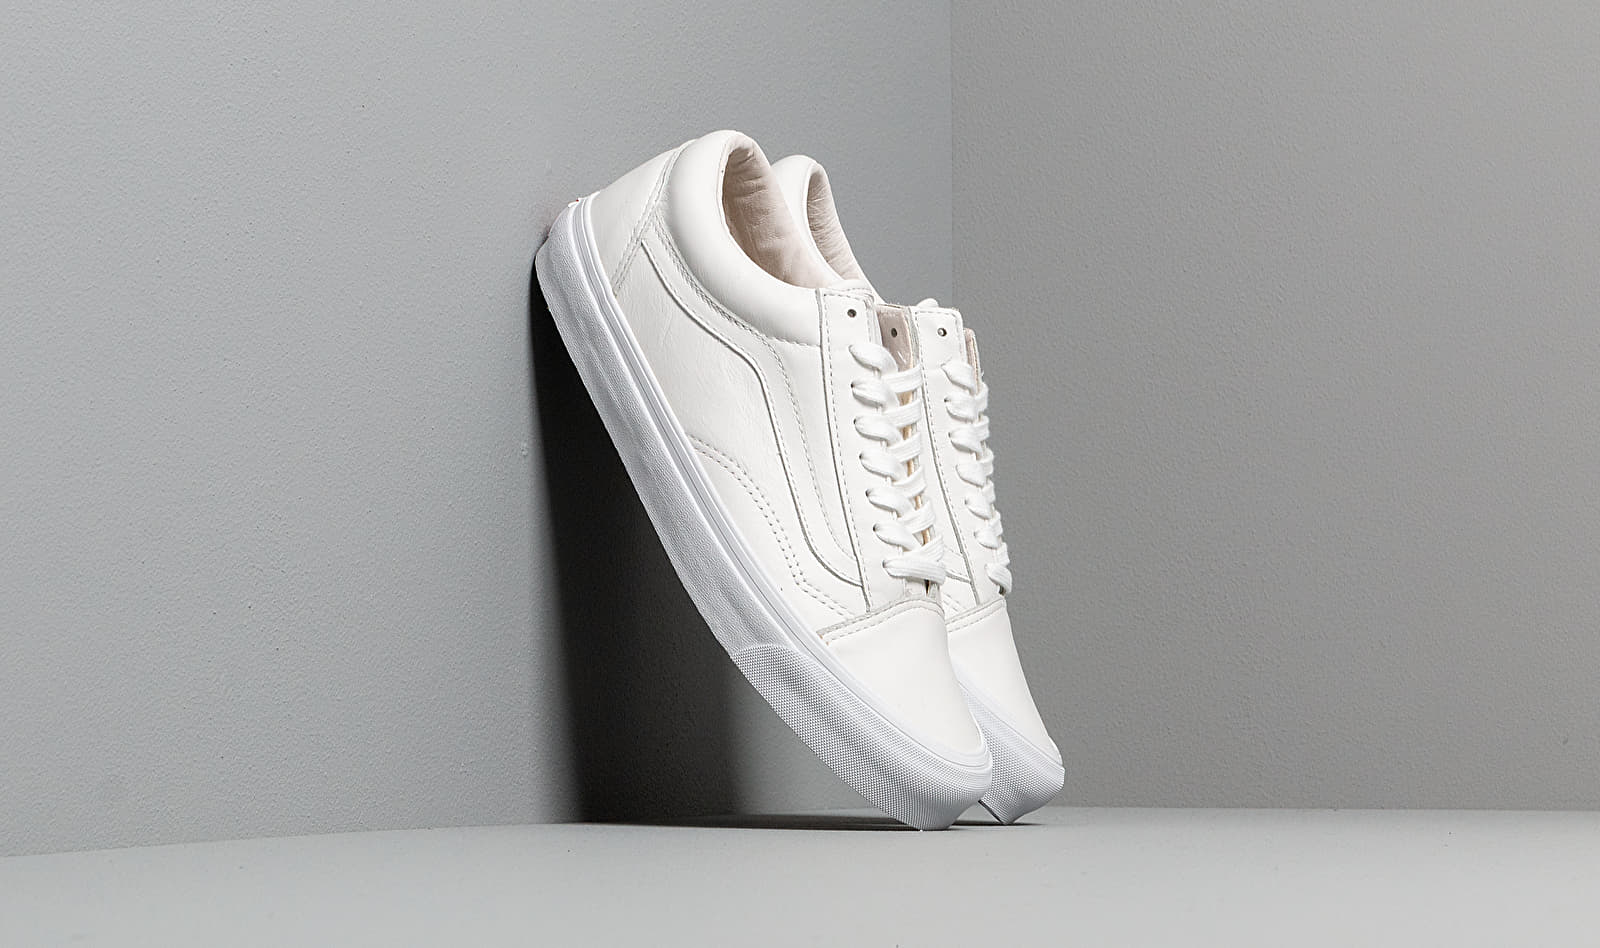 Vans OG Old Skool LX VL VLT White